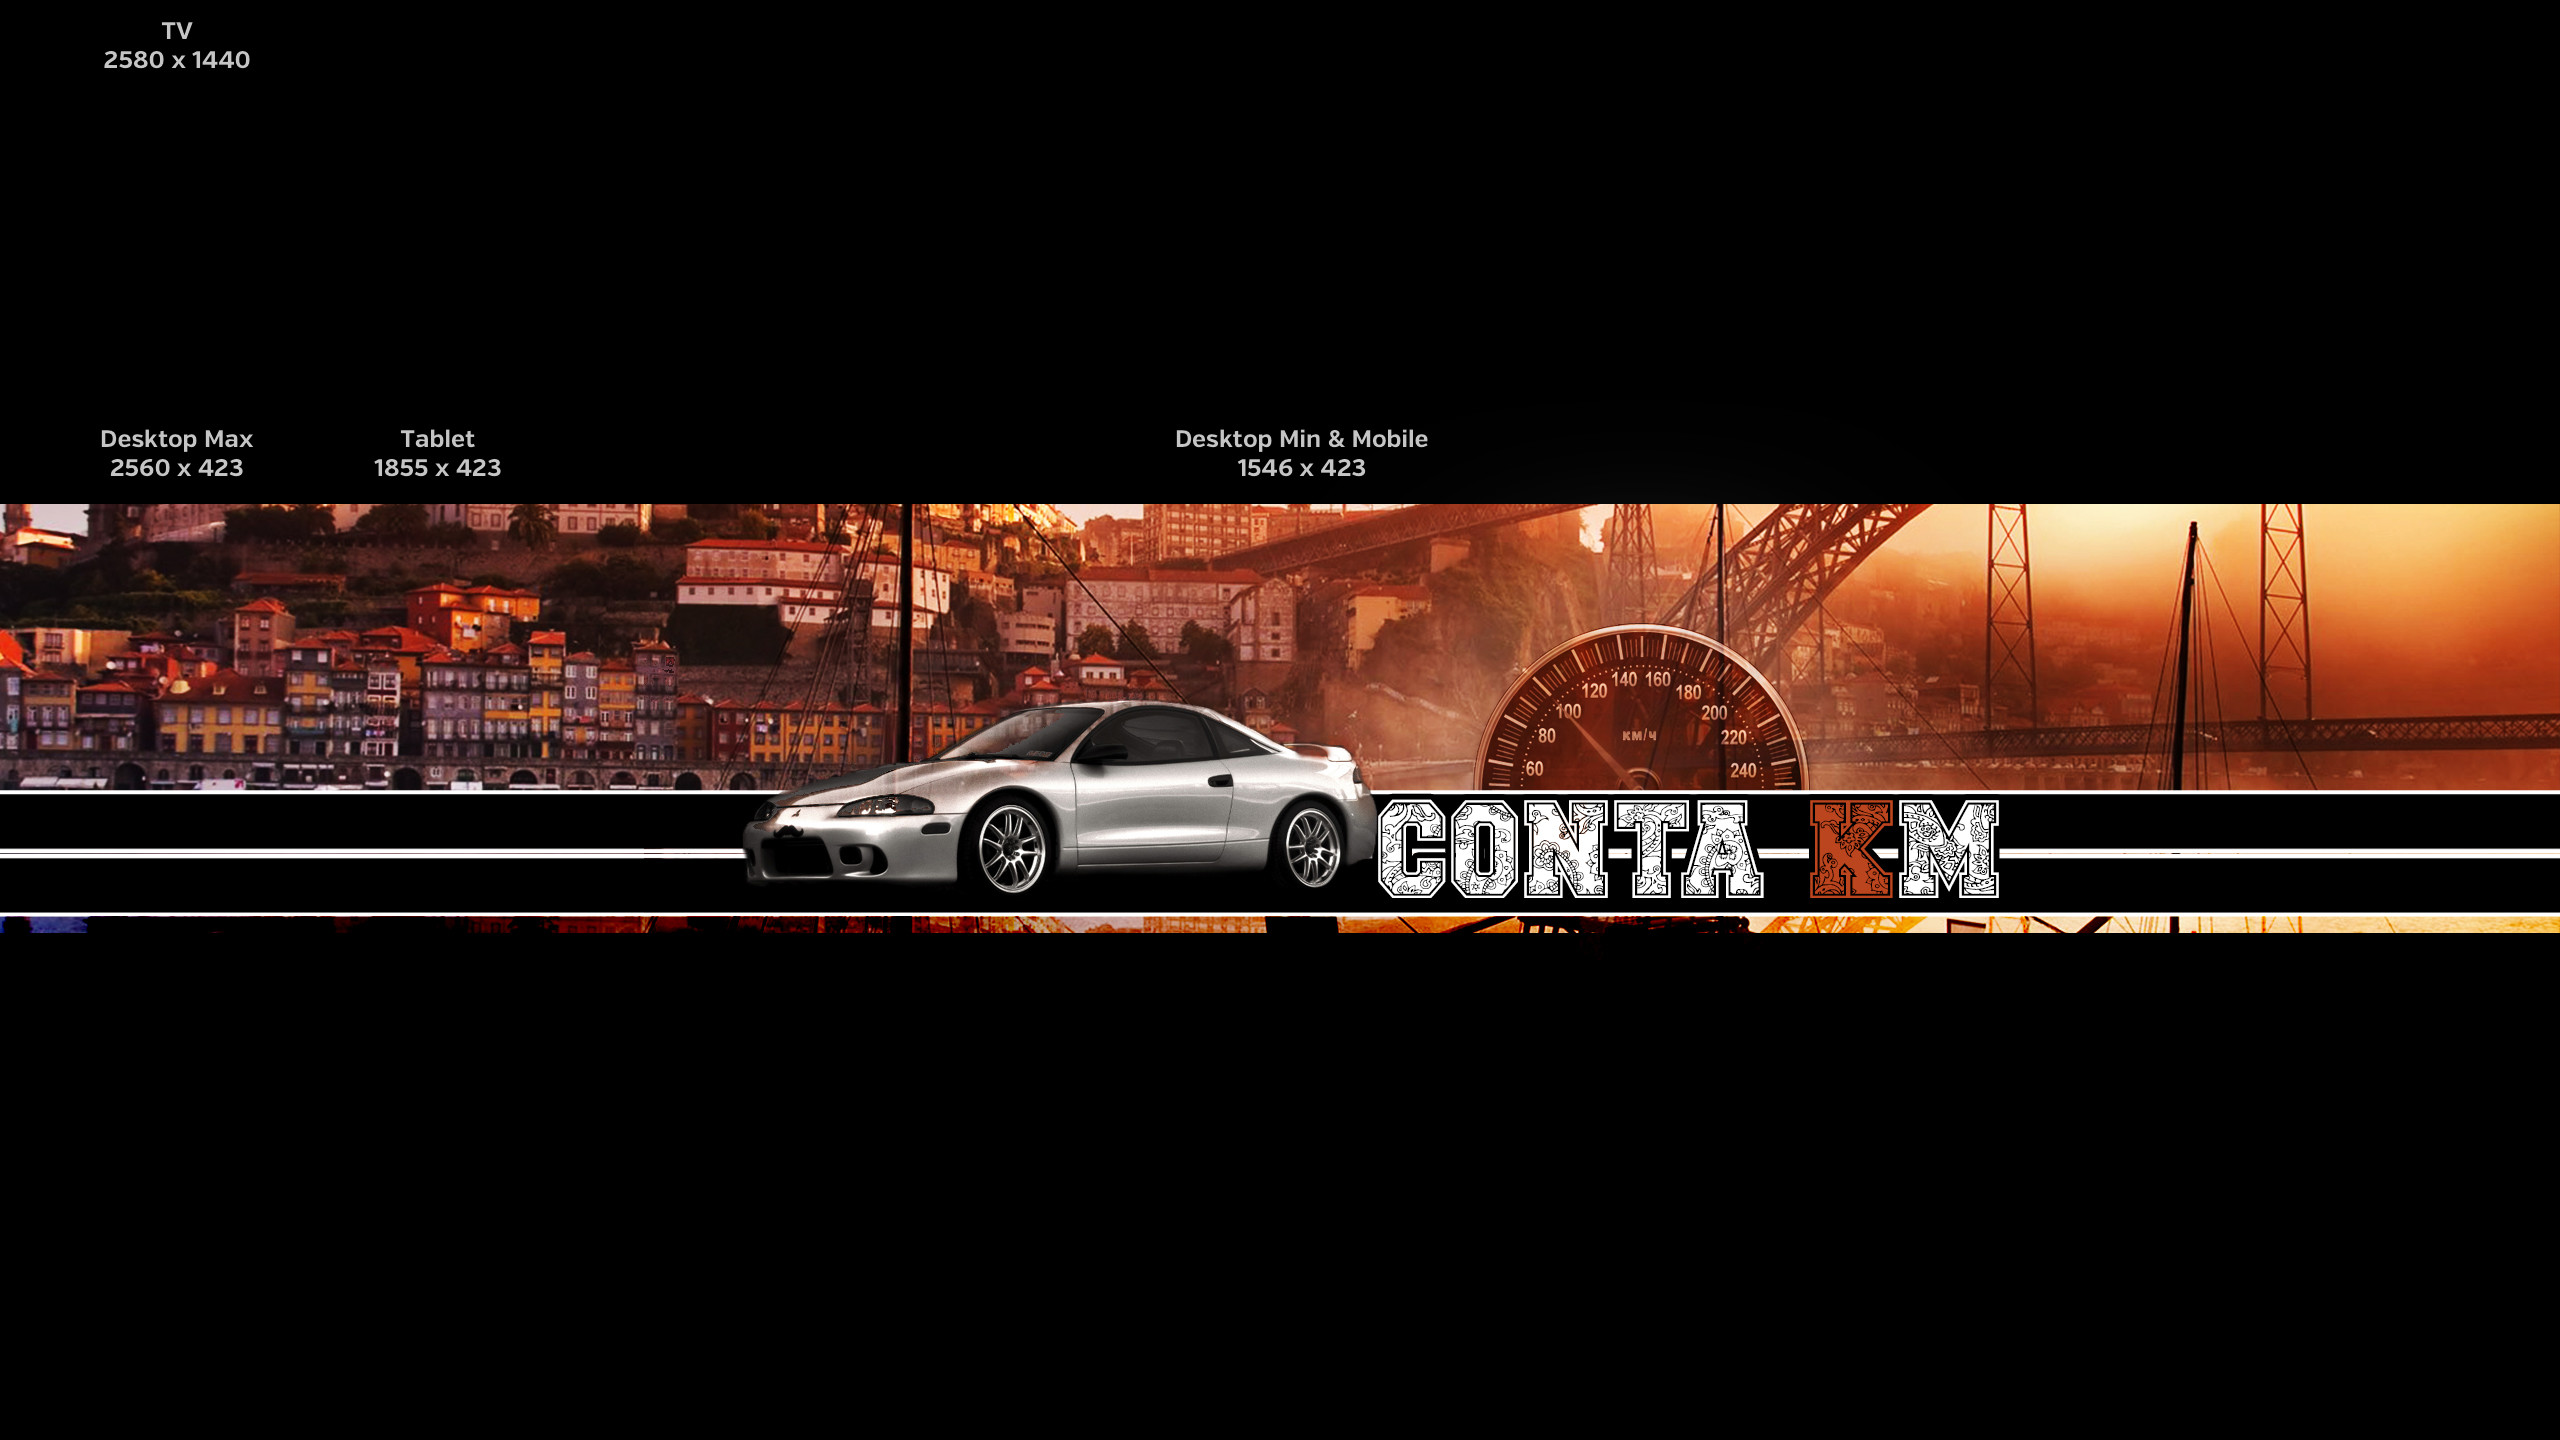 This is the banner that I'm working for my Car Channel, wut do you guys  think? Wut would you change? I'm not very experienced with photoshop!